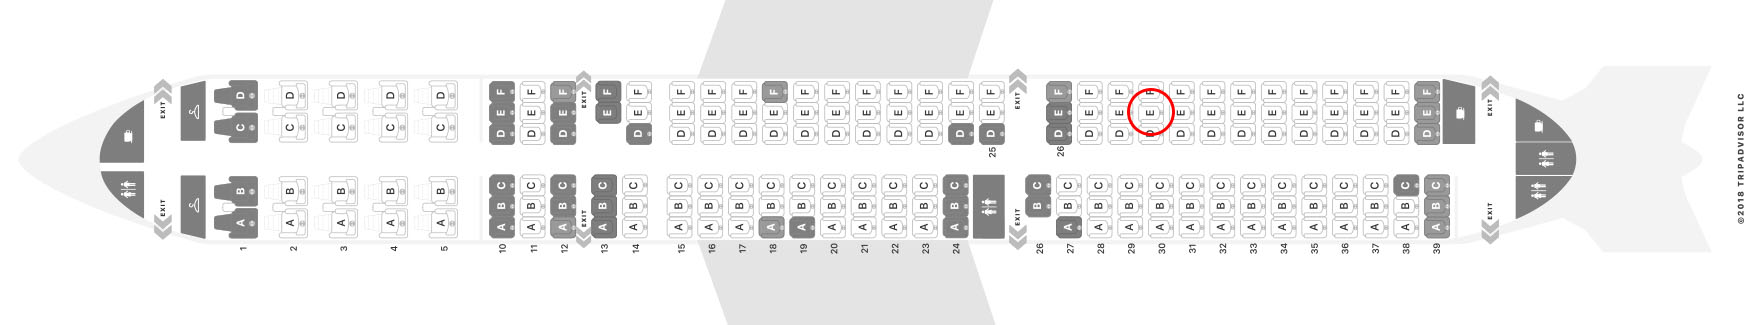 Delta a321 seat map